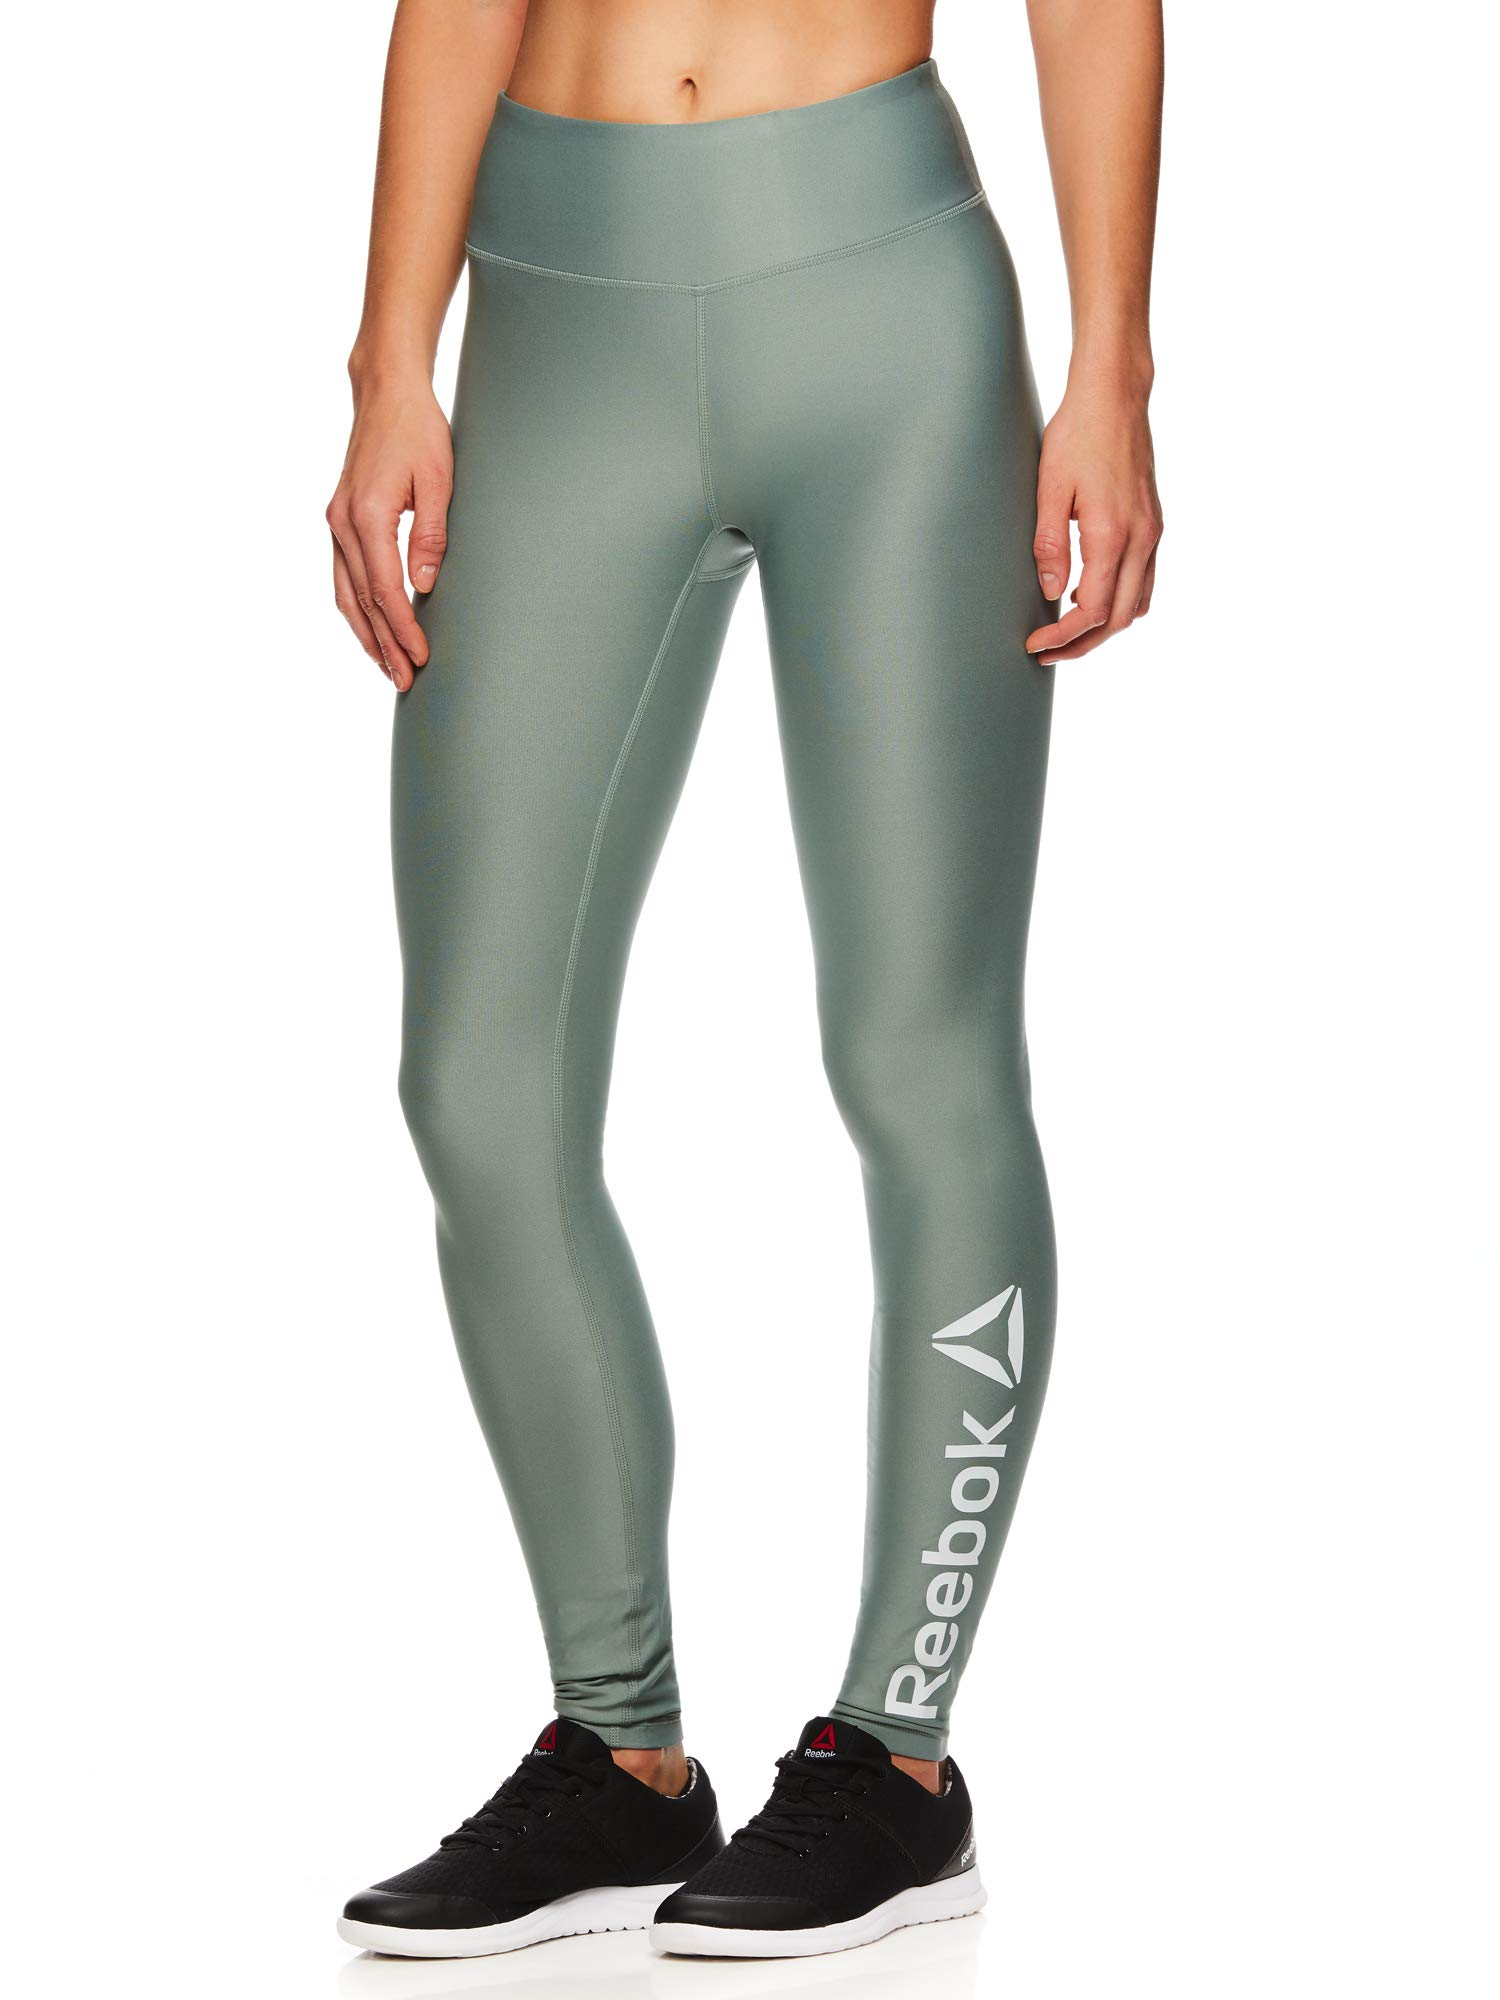 Reebok Women's Legging Full Length Performance Compression Pants - Chinois Green Green, Small by Reebok